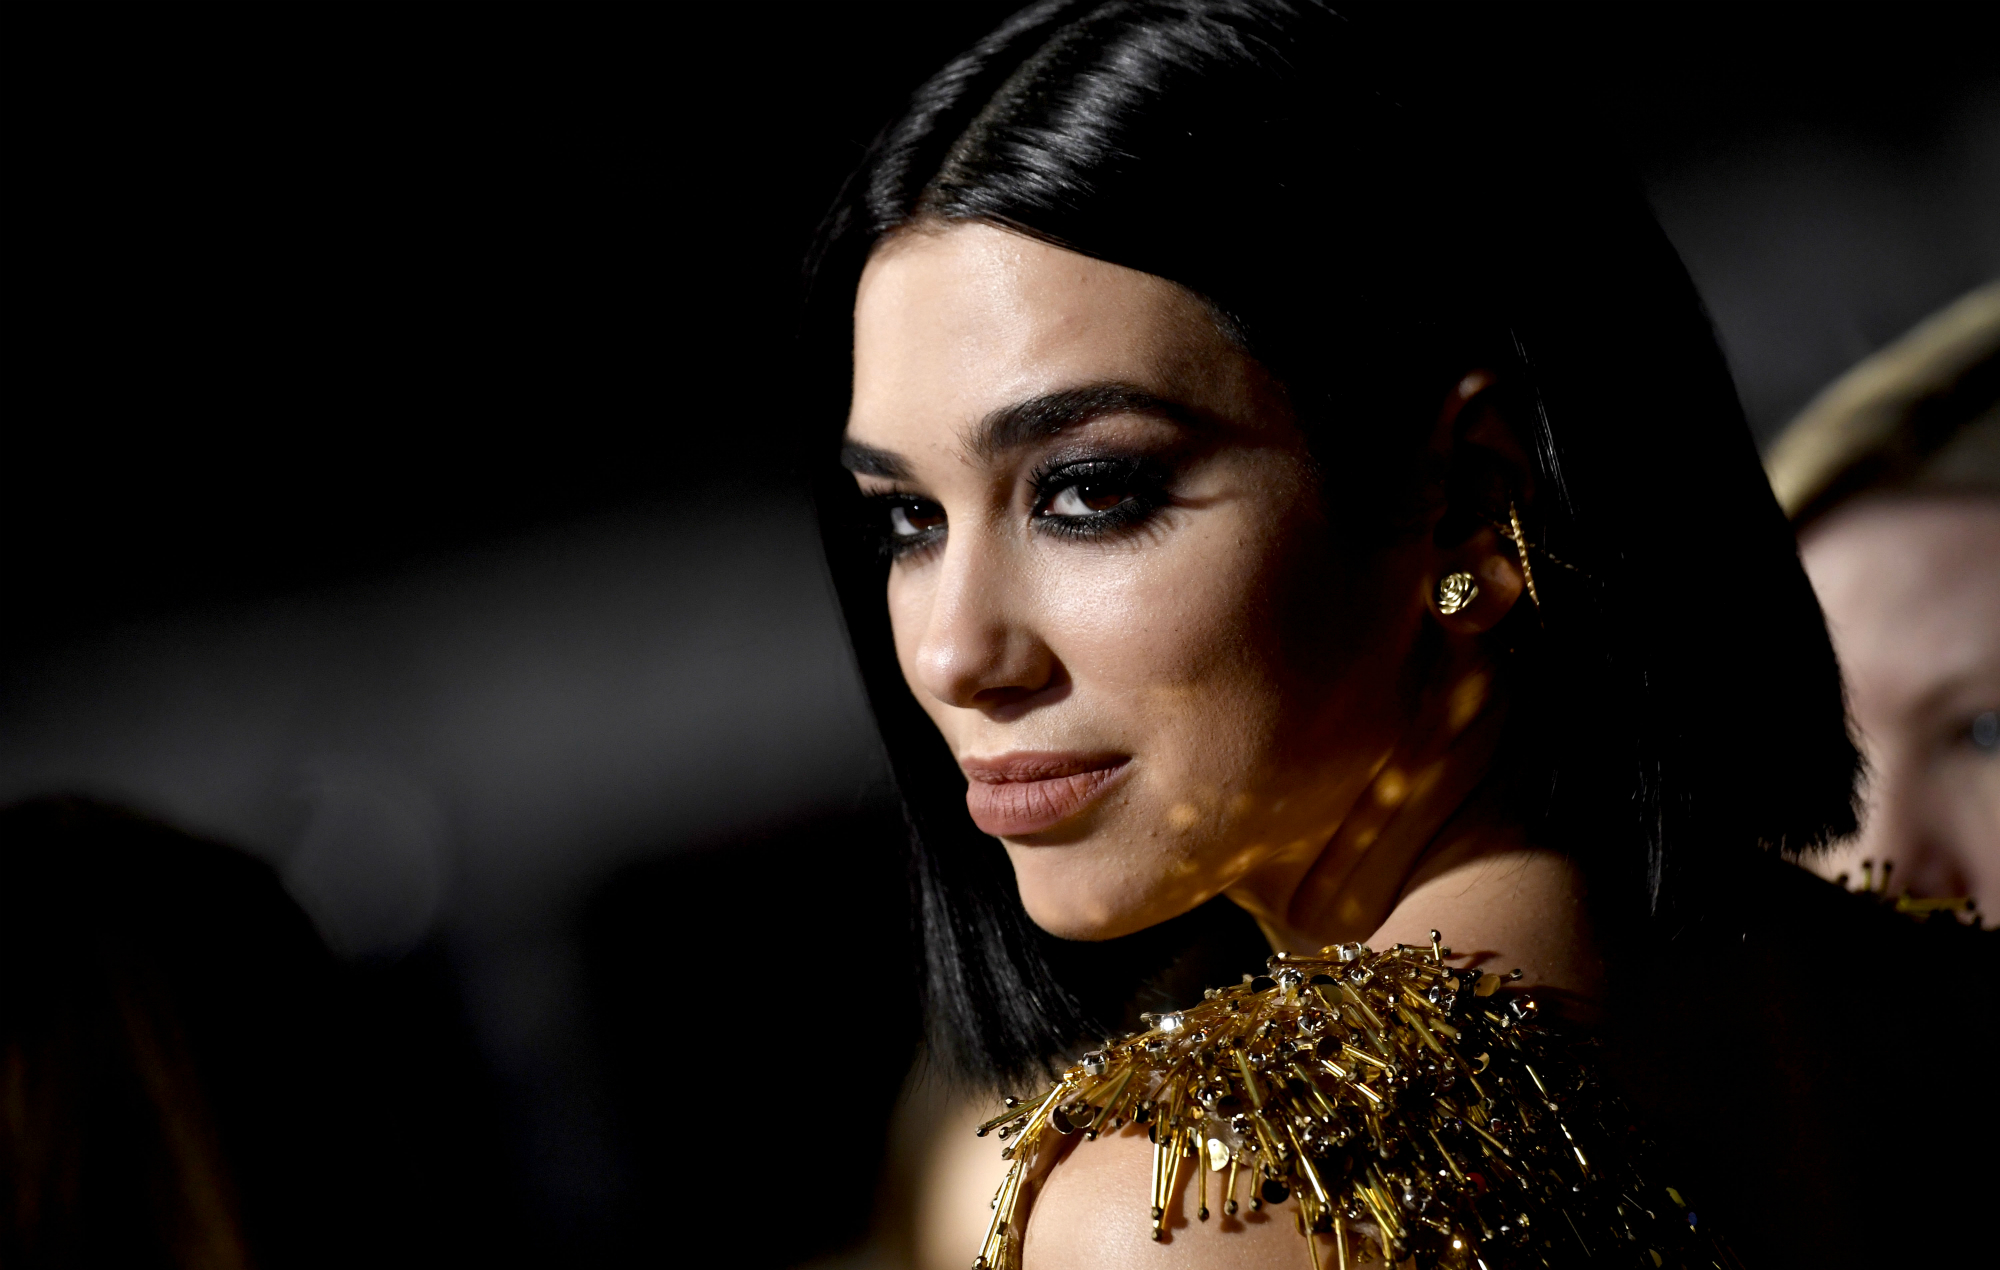 Pretty Face Dua Lipa - Dua Lipa Net Worth, Pics, Wallpapers, Career and Biography